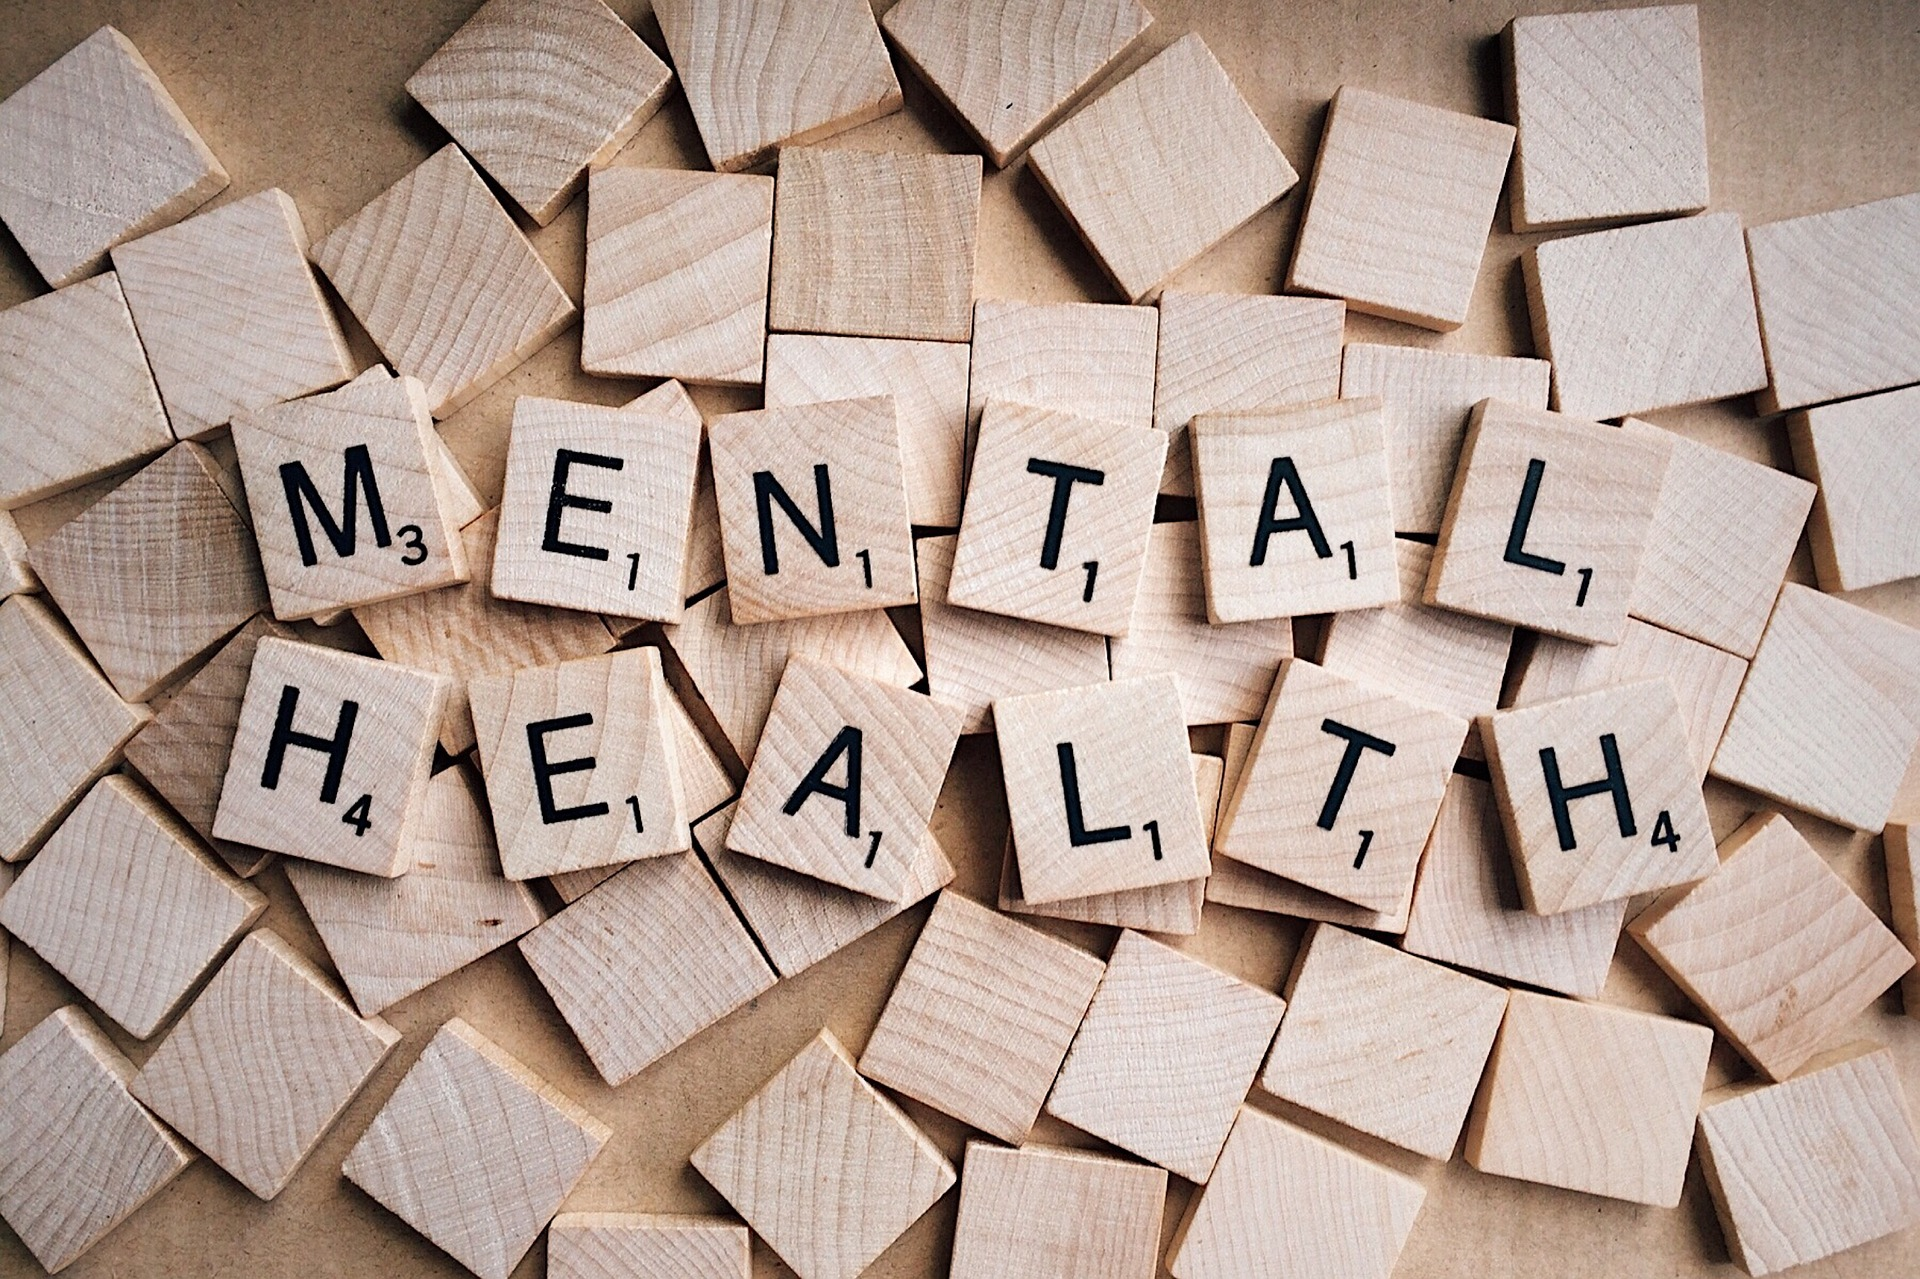 'Our collective mental health is deteriorating', claims MHF study